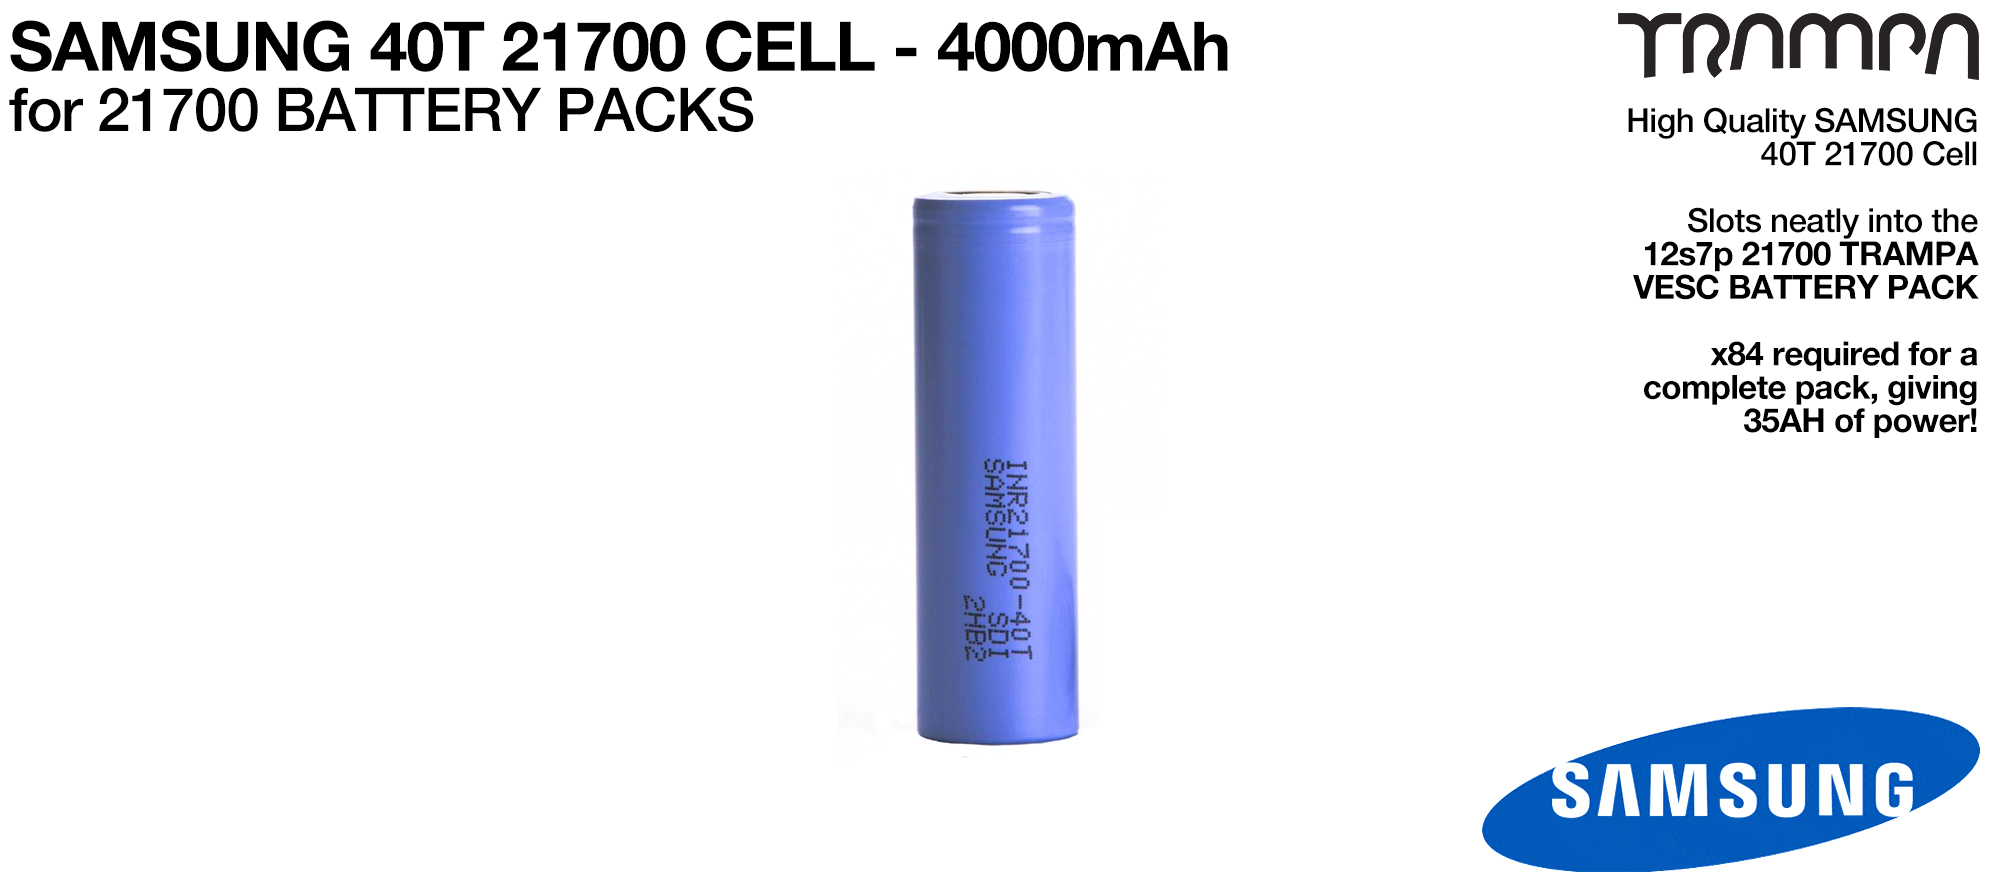 SAMSUNG 21700 40T 4000 mAh Cells - UK Customers only (+£550)